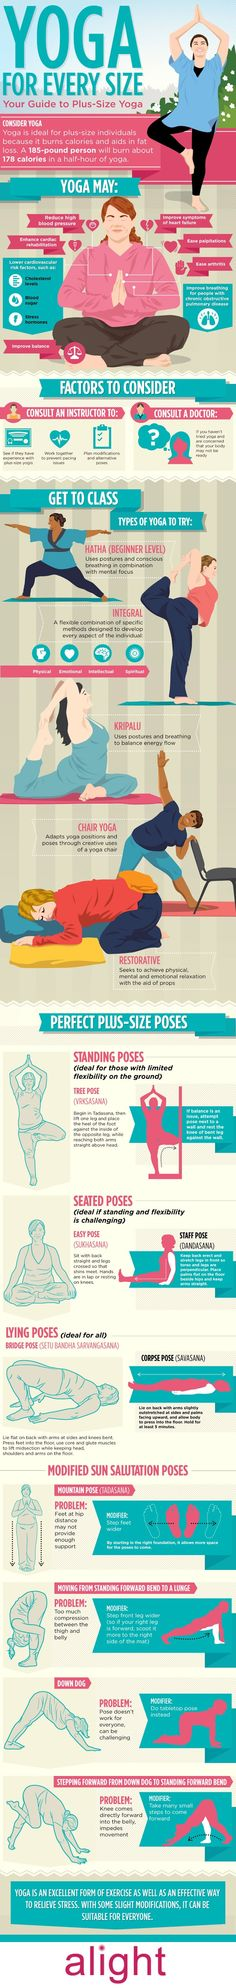 Yoga For Every Size - Your Guide To Plus Size Yoga! - http://blog.nadyoga.org/yoga-for-every-size-your-guide-to-plus-size-yoga/